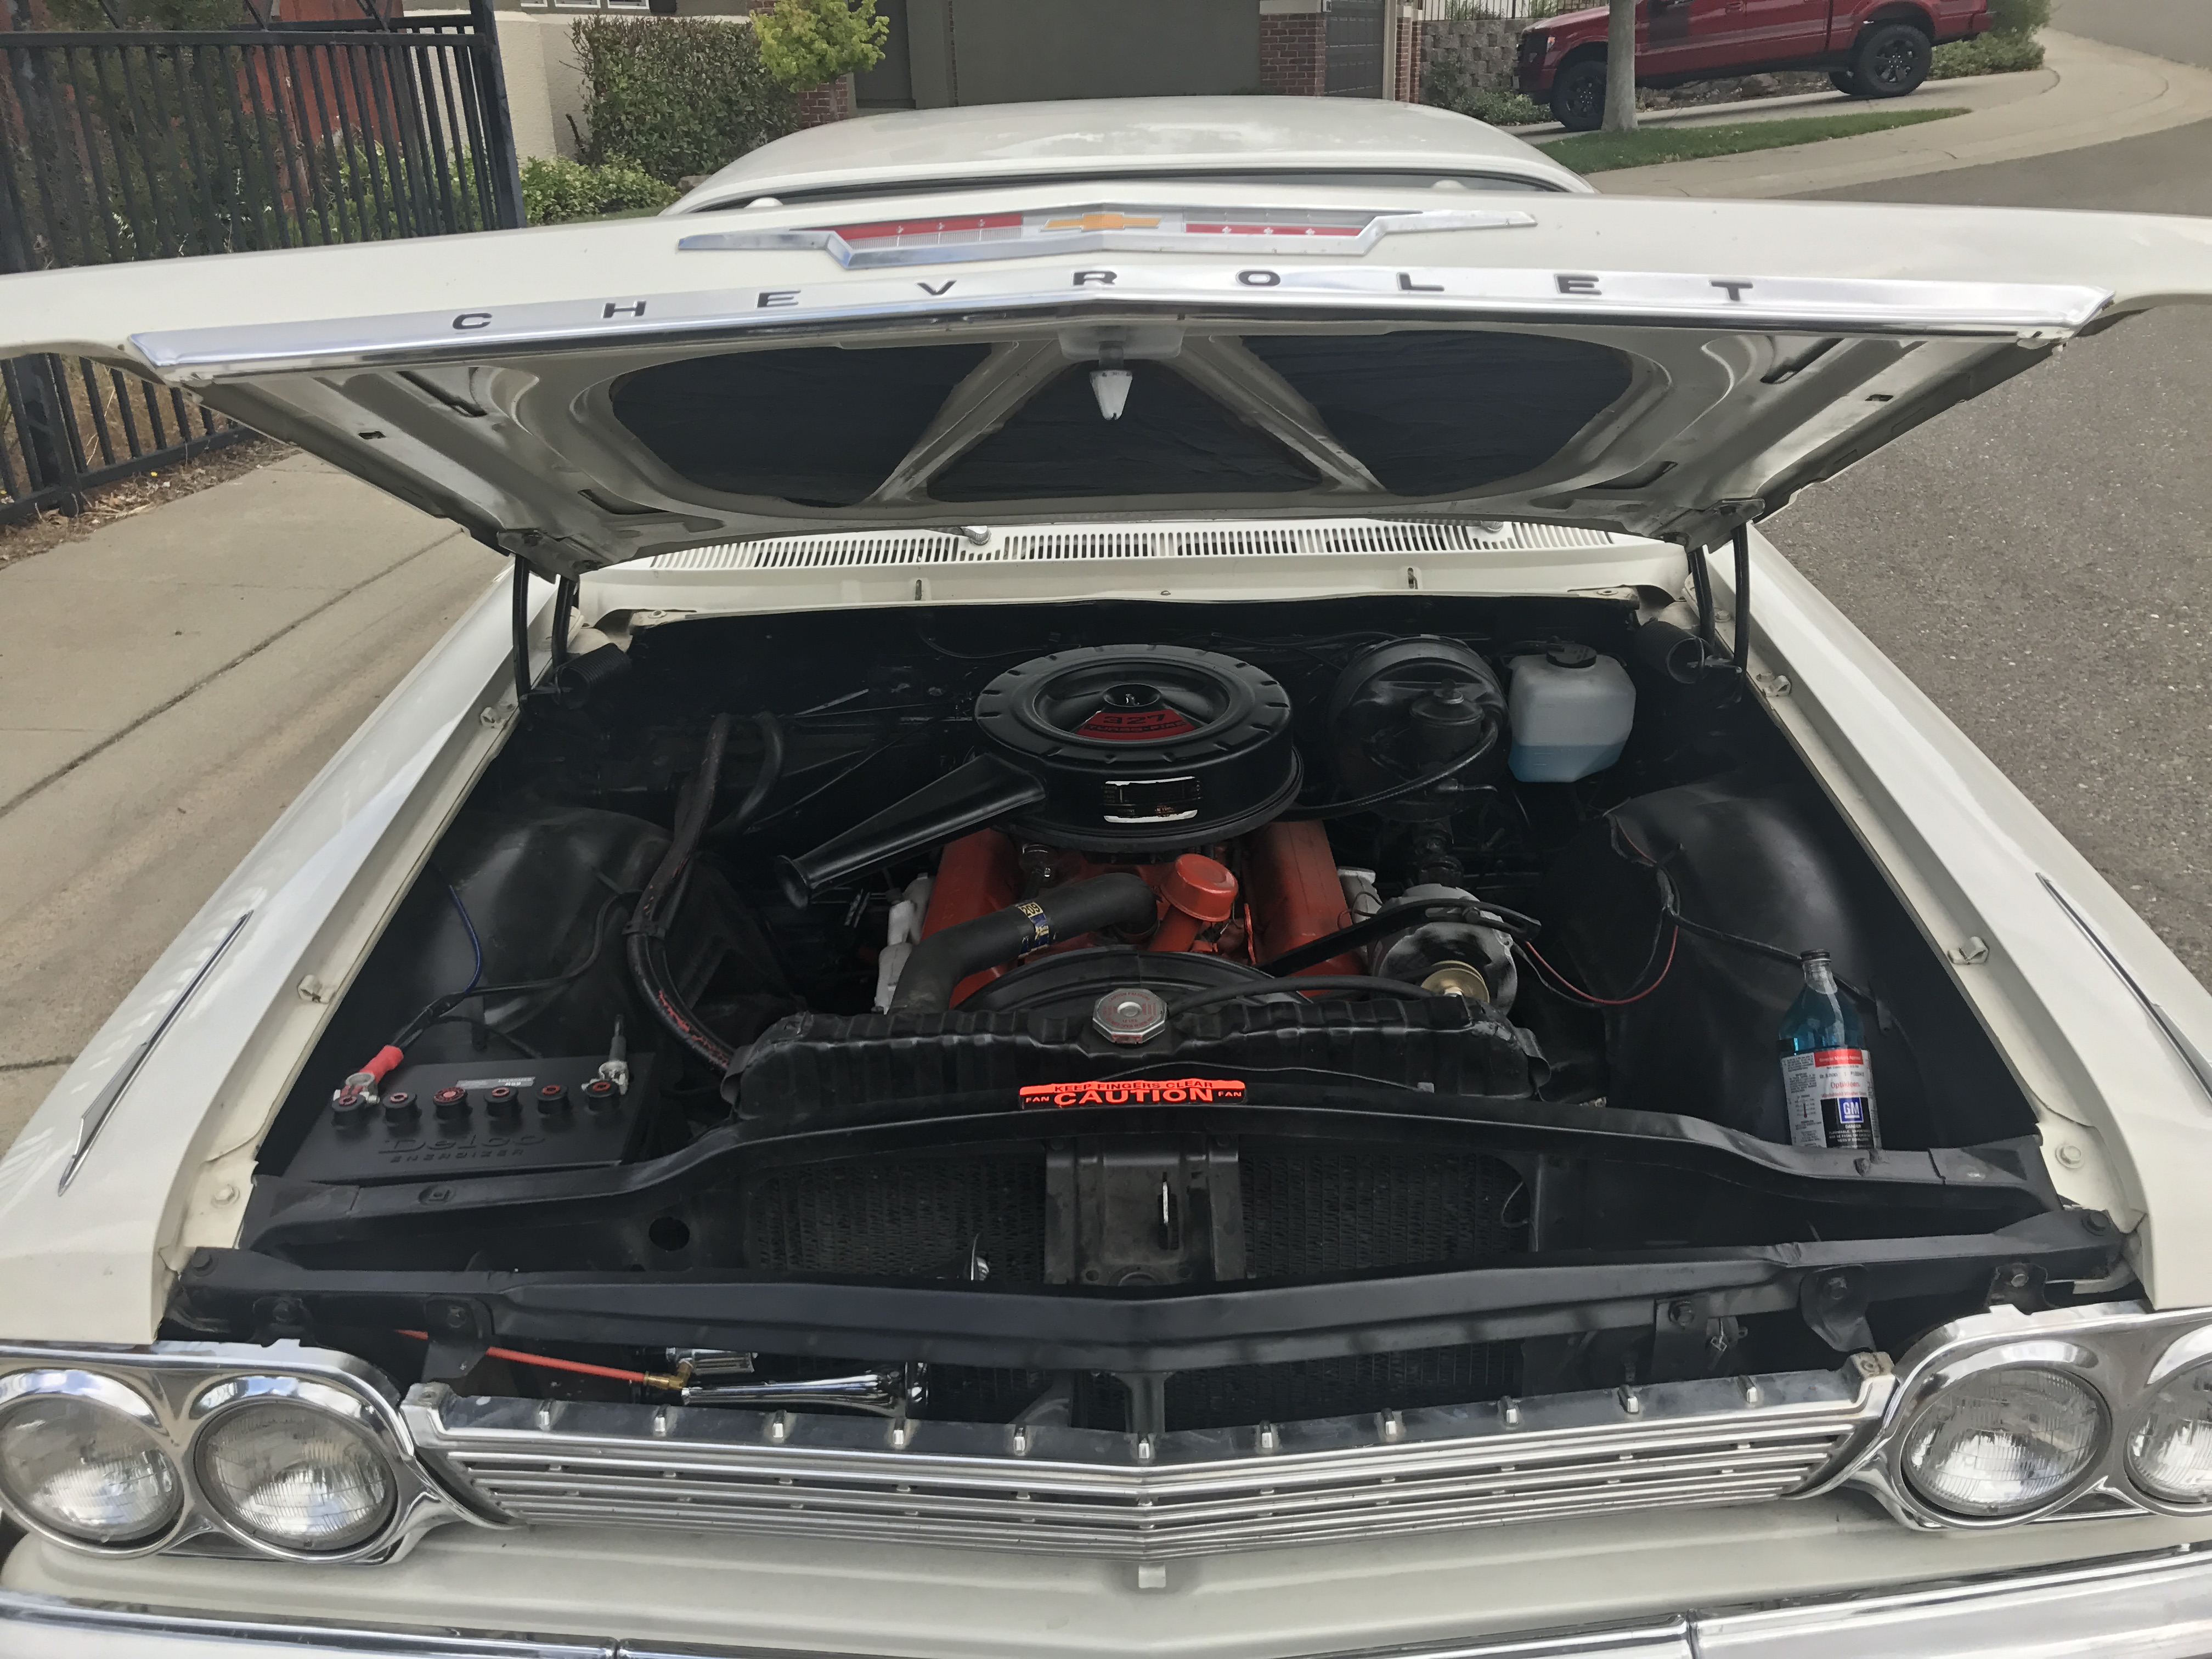 Ez Air Ride S 1962 Chevy Impala Is For Sale